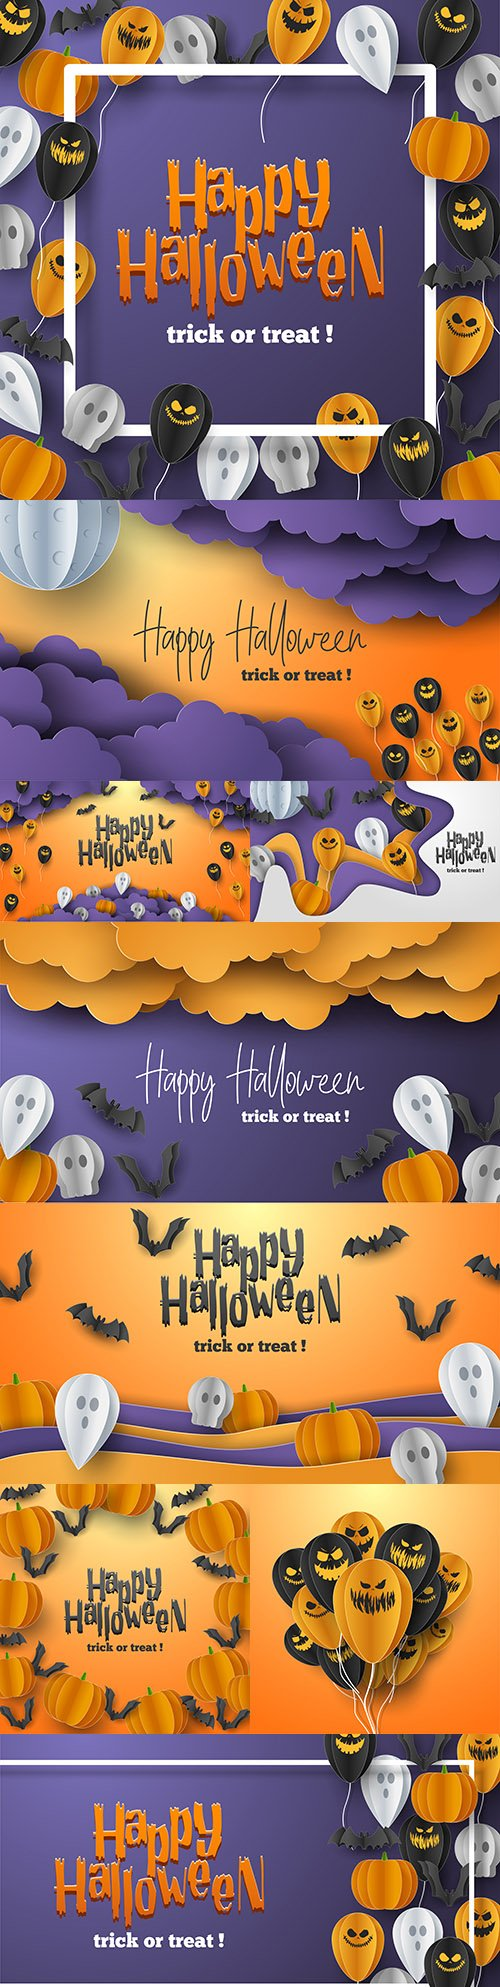 Happy Halloween holiday banner illustration collection 2